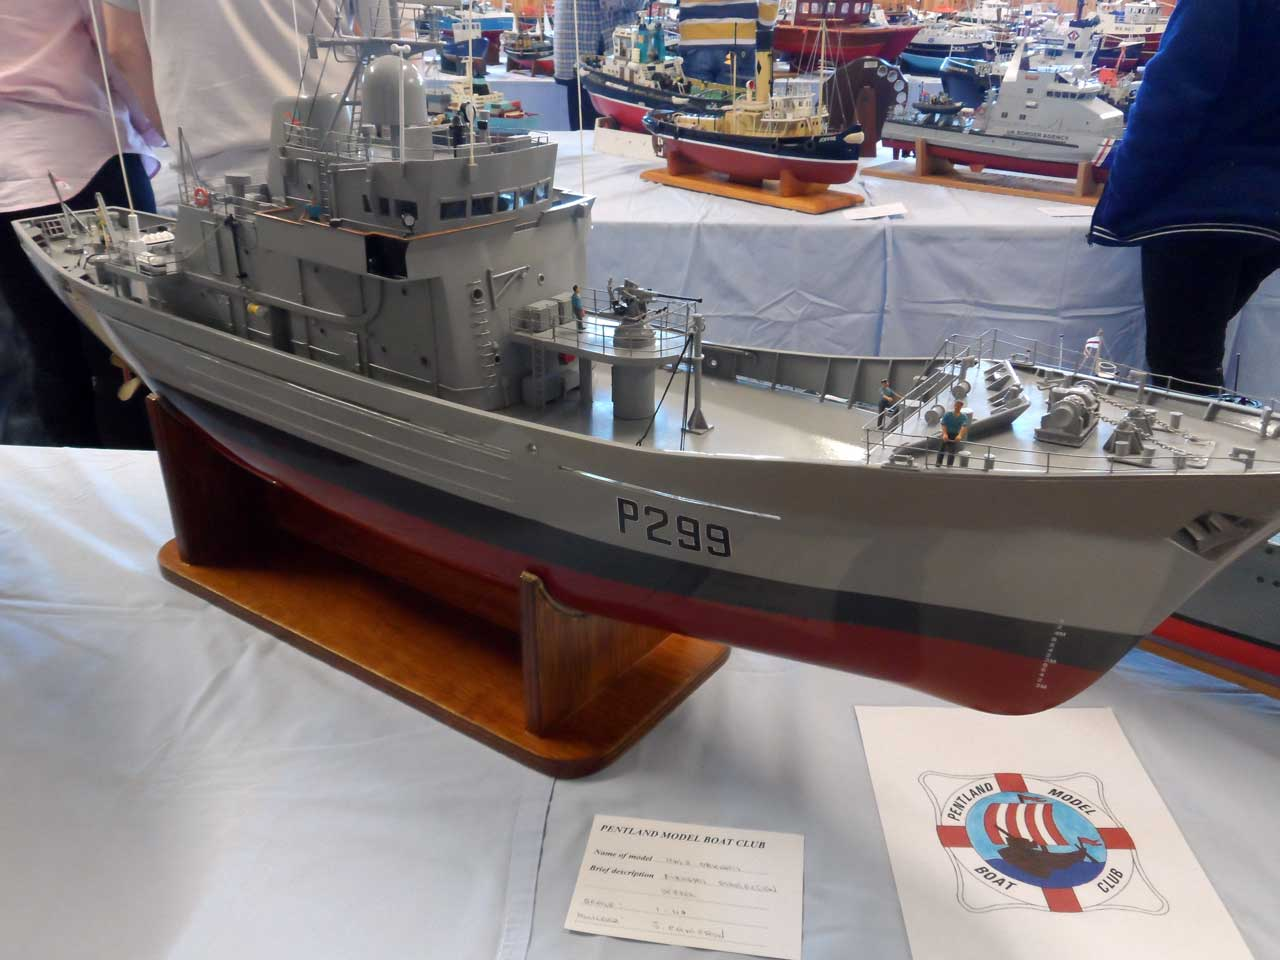 Photo: HMS Orkney  - Fishery Protection Vessel - Model Boat Show 2015